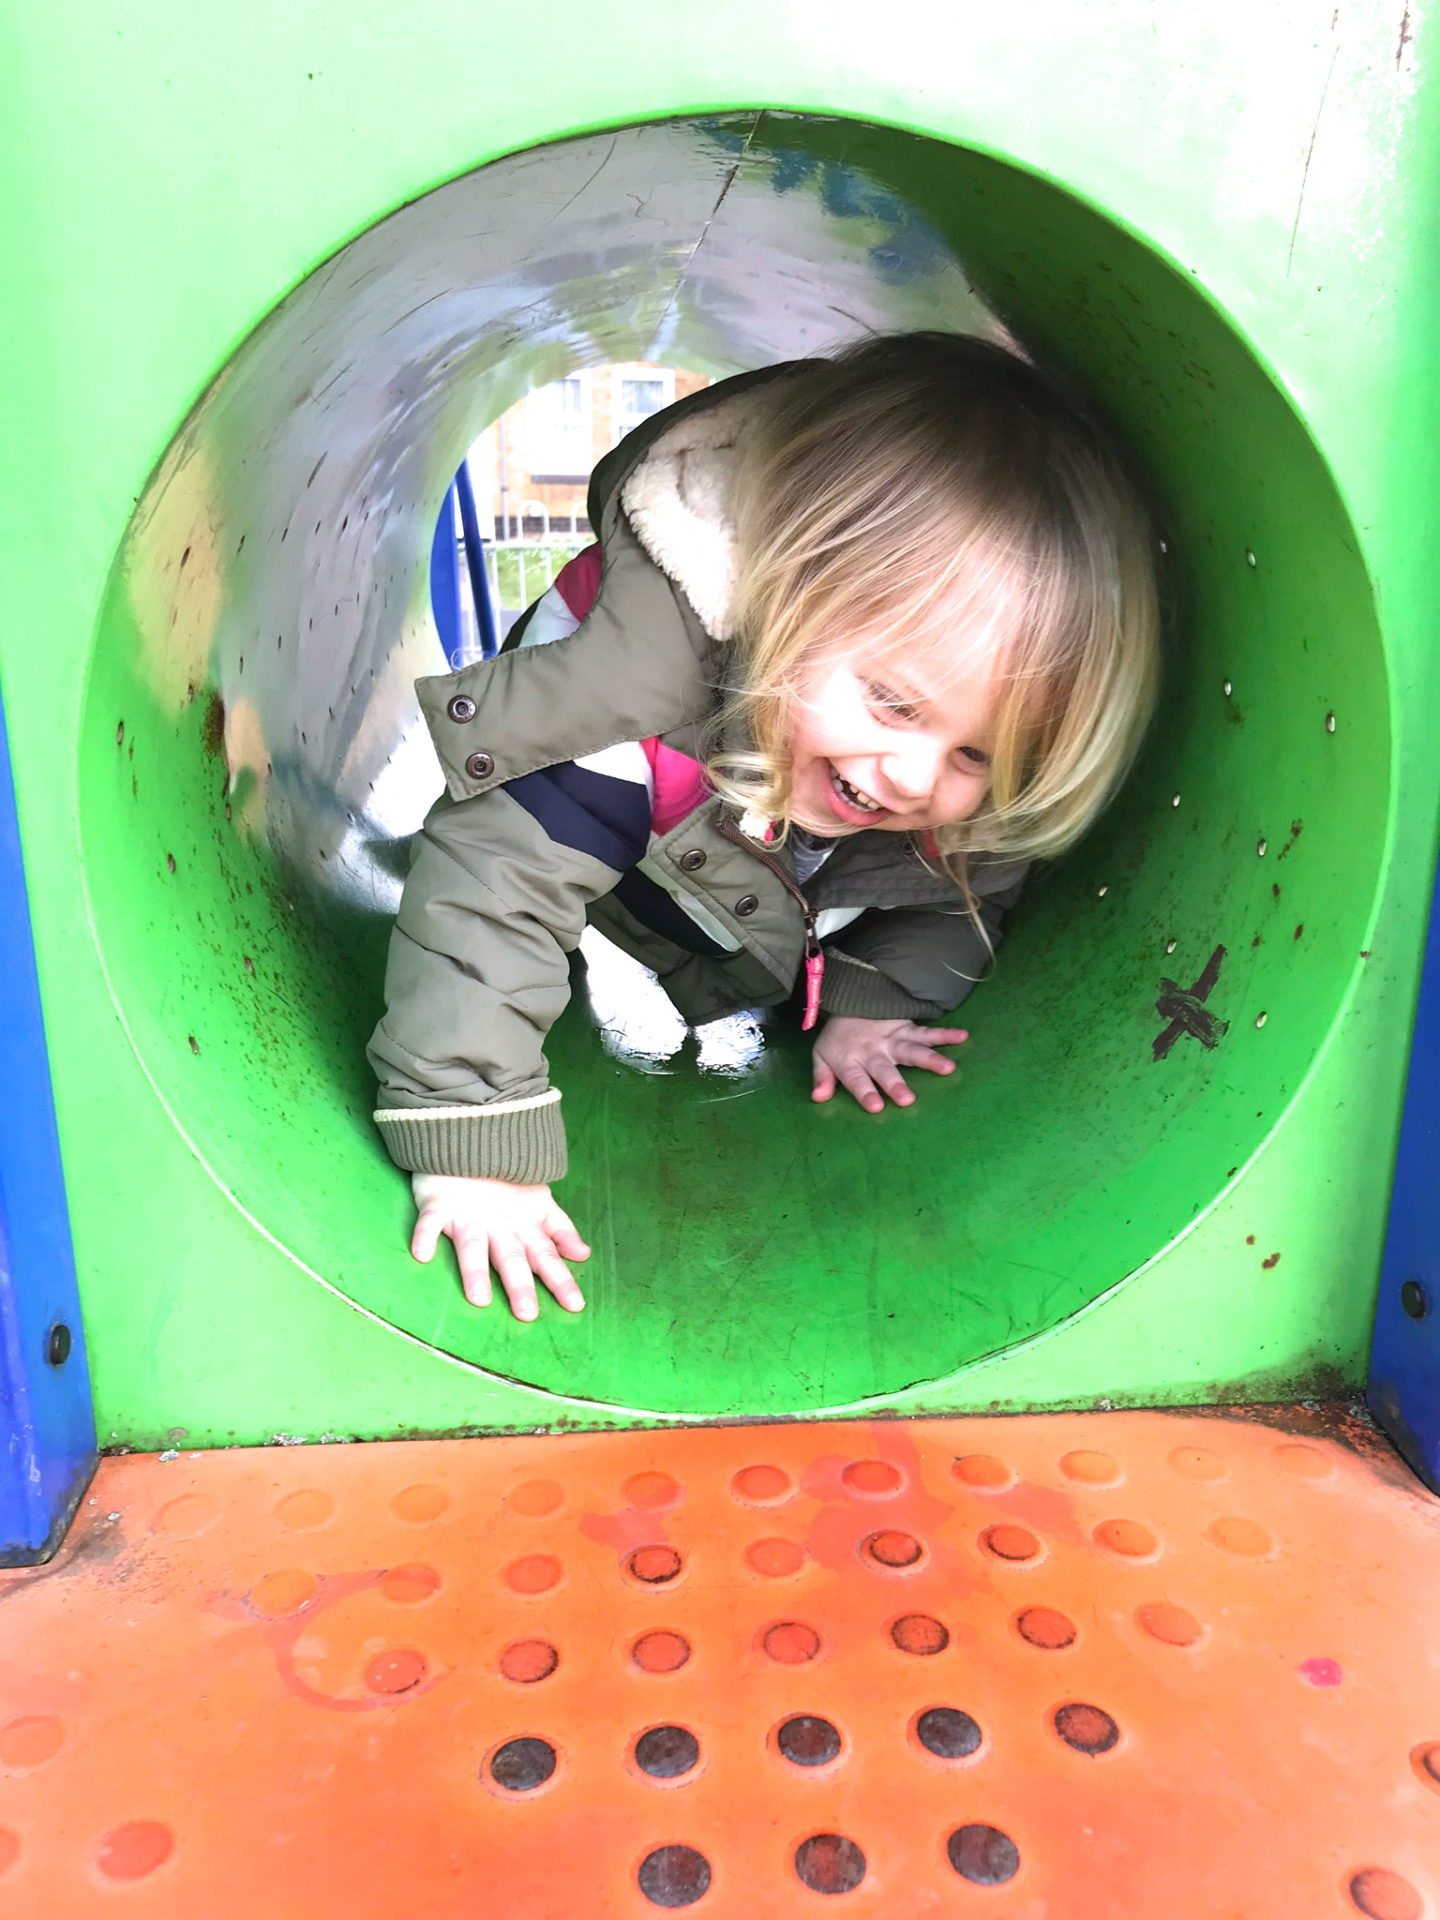 Two year old crawling through a tunnel in a playground